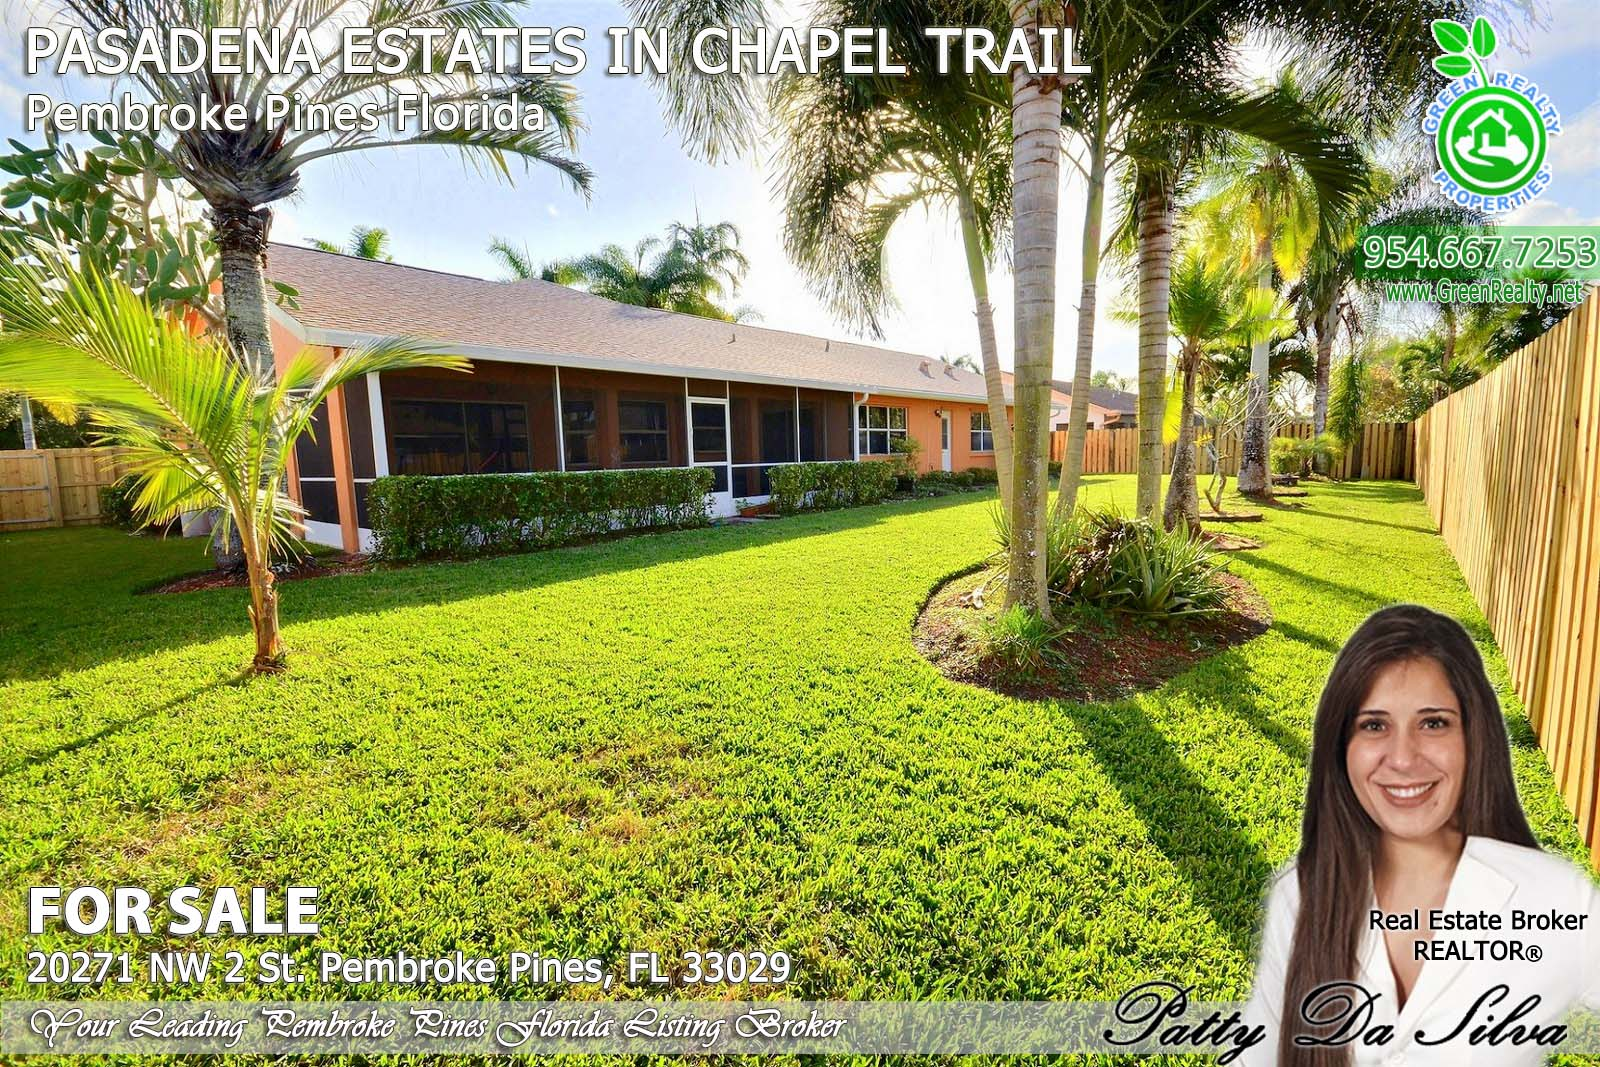 Pasadena Estates of Chapel Trail - Pembroke Pines FL real estate